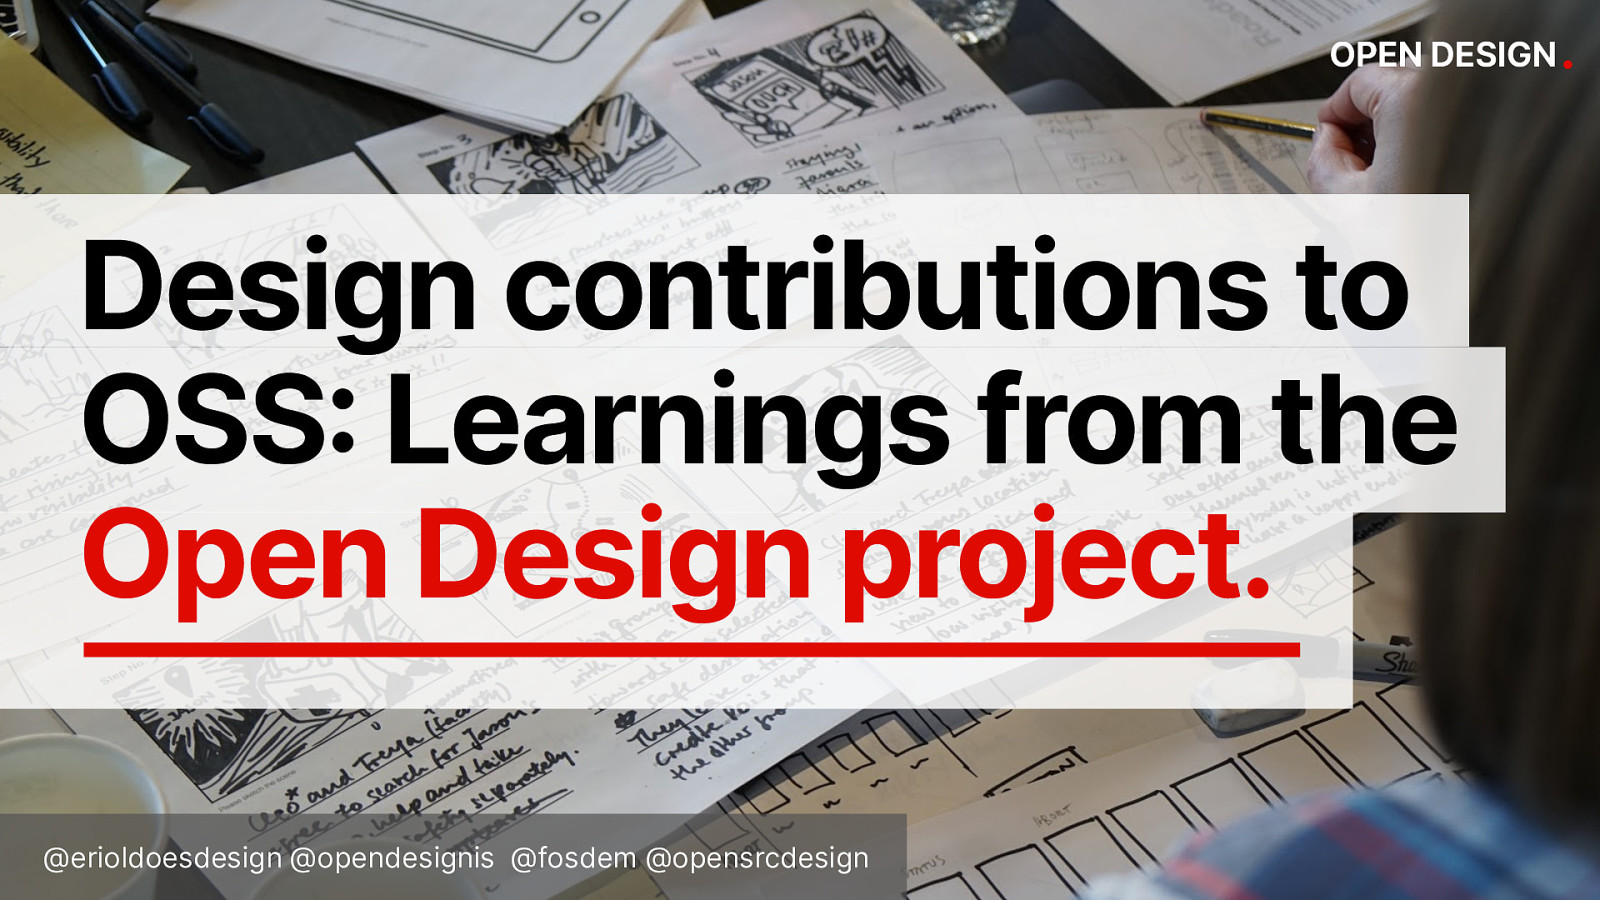 Design contributions to OSS: Learnings from the Open Design project at Ushahidi Structuring in-person and remote workshops for open source design contributions.